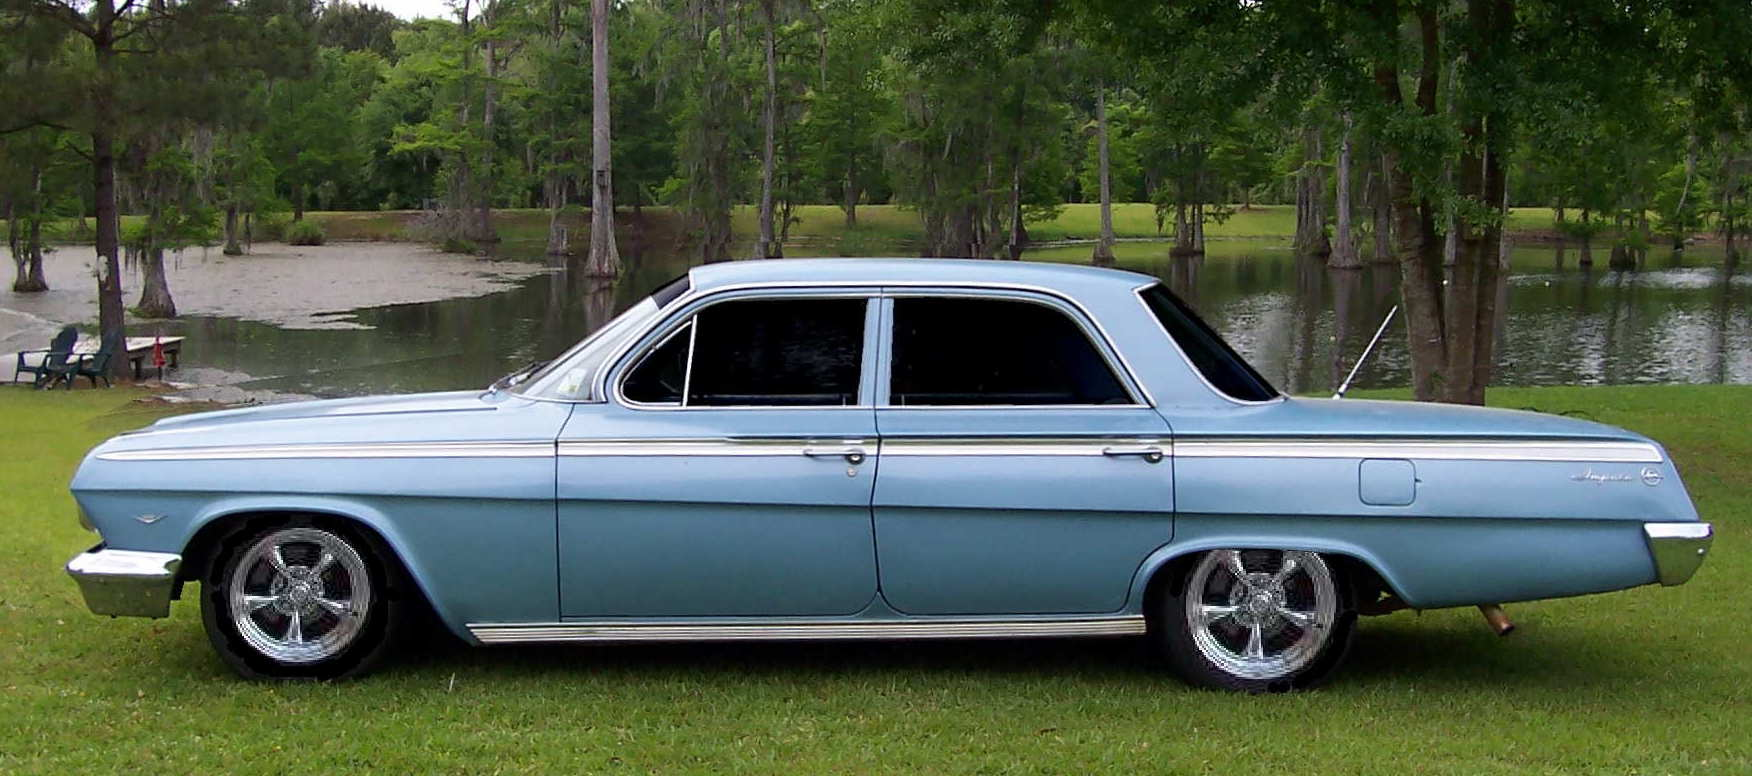 Click image for larger version  Name:hunter's car (4).jpg Views:91 Size:151.1 KB ID:6595